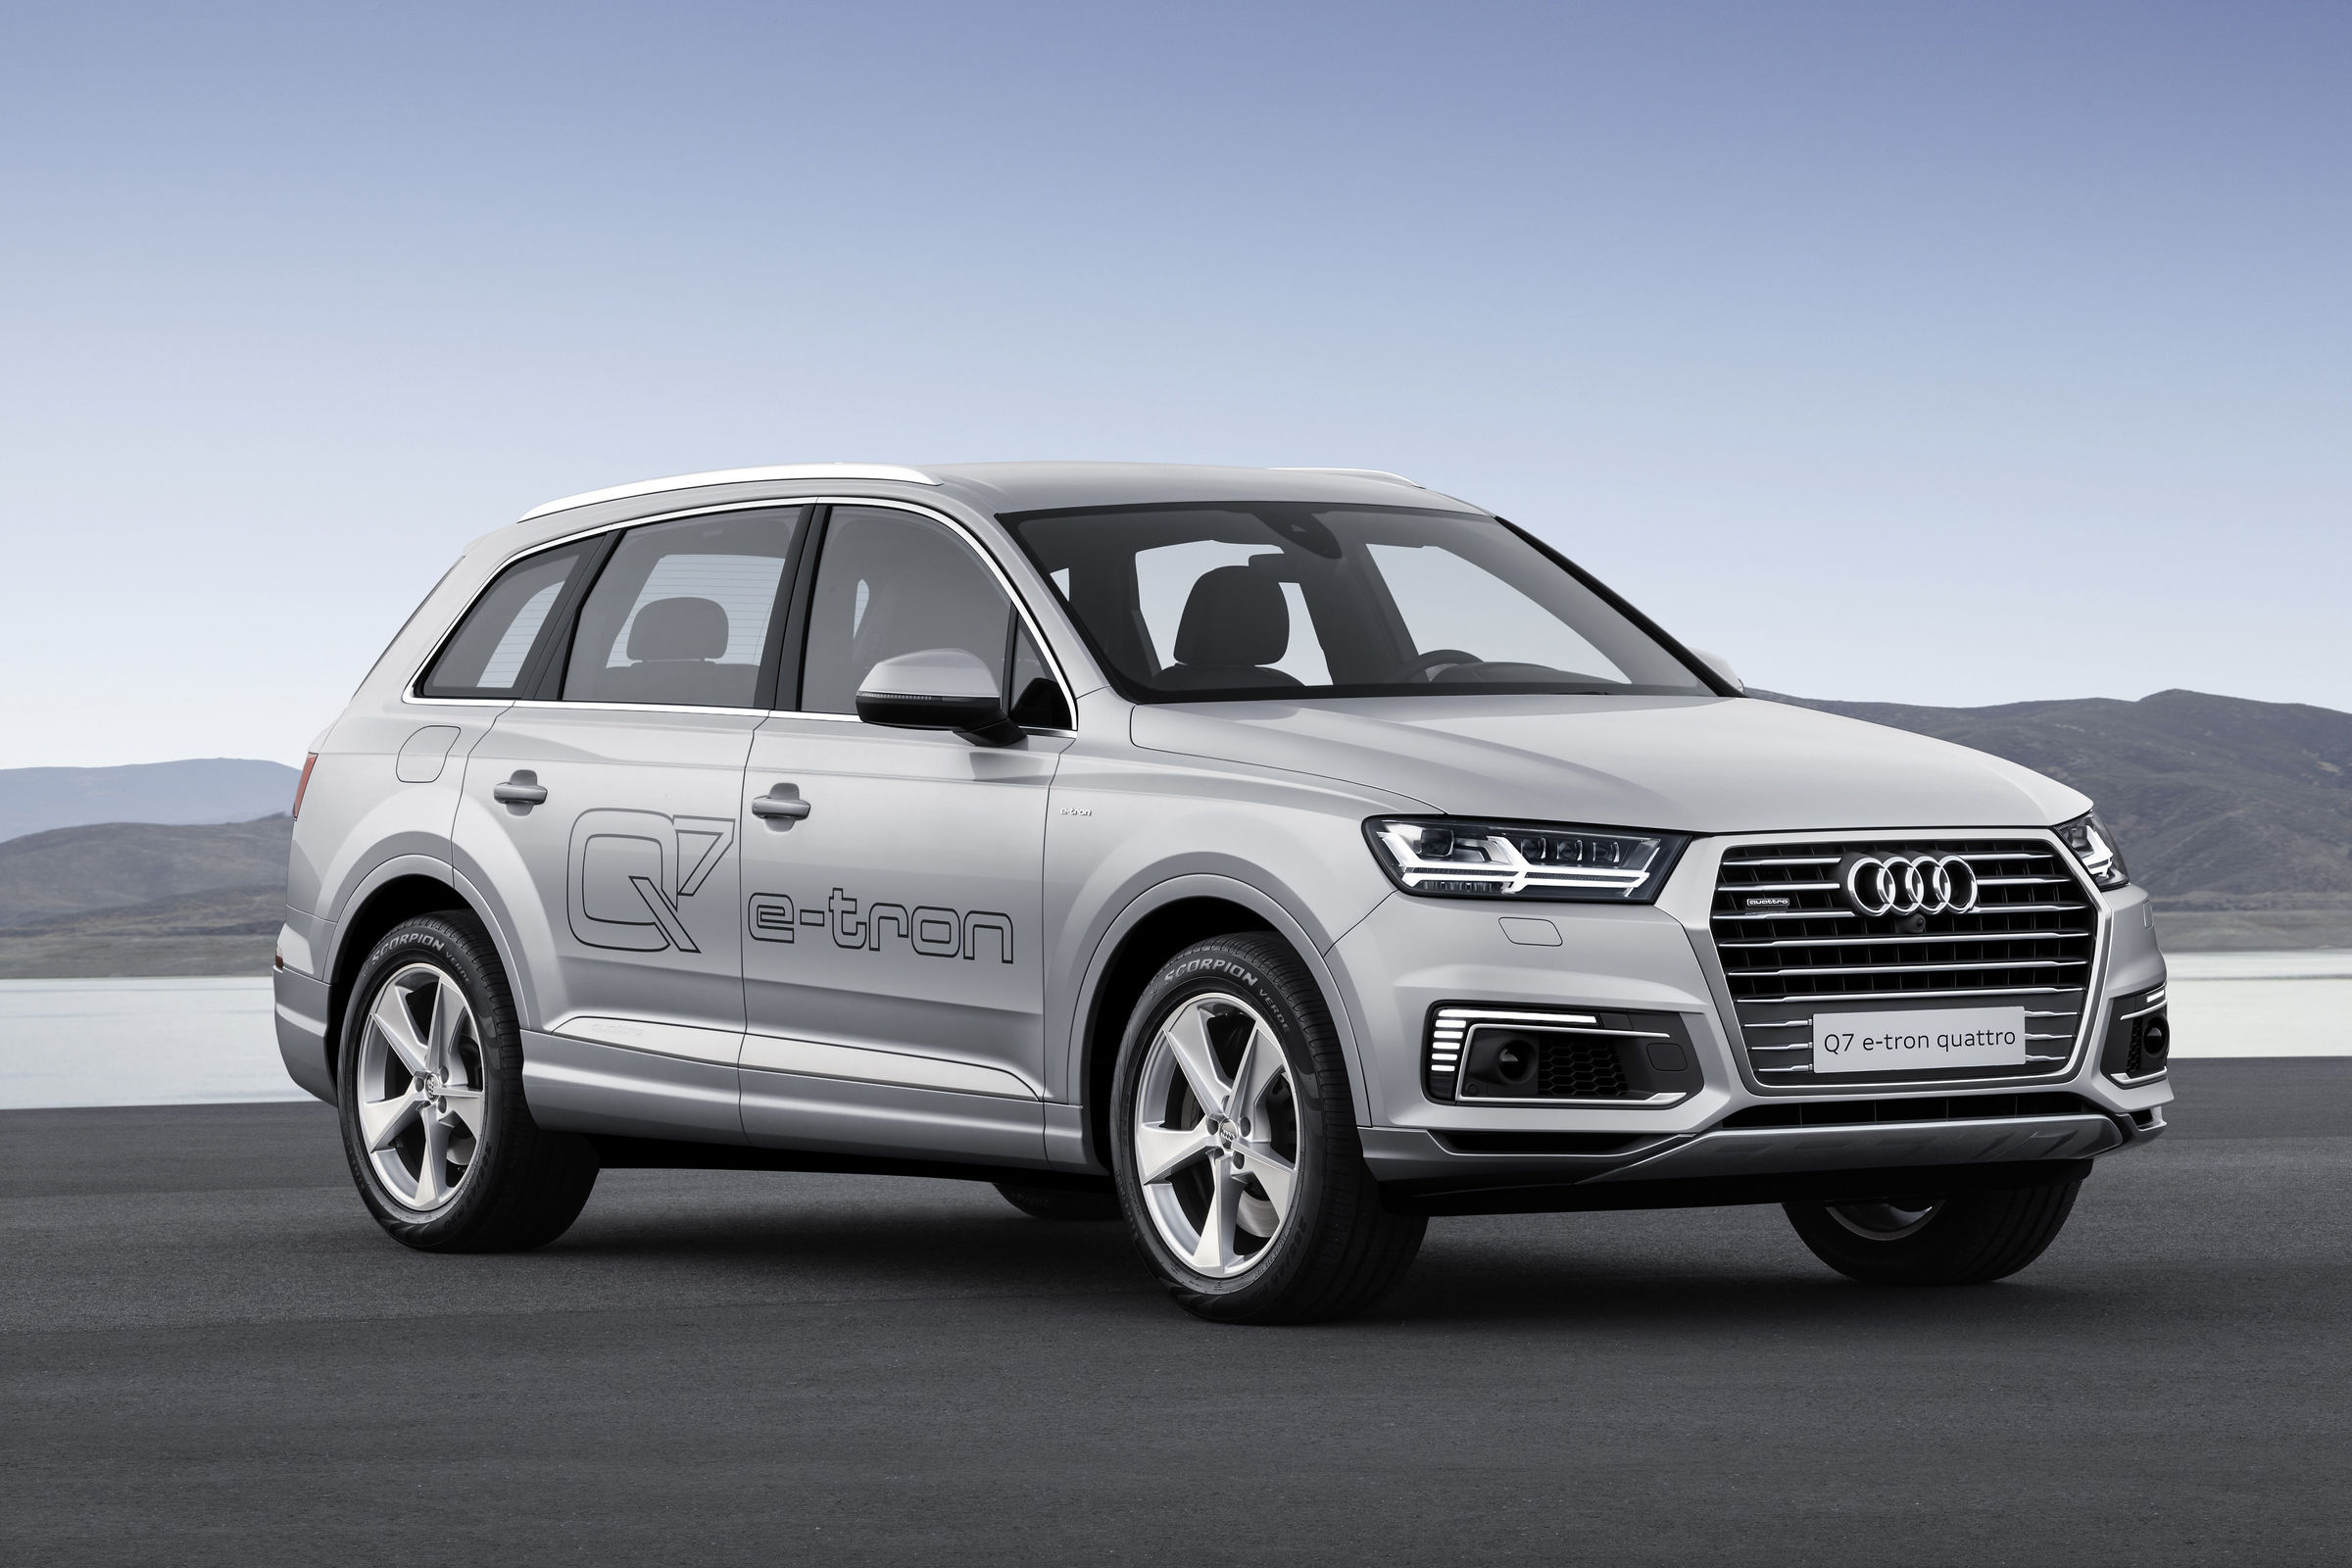 Great Class Minimal Emissions The New Audi Q7 E Tron 20 Tfsi